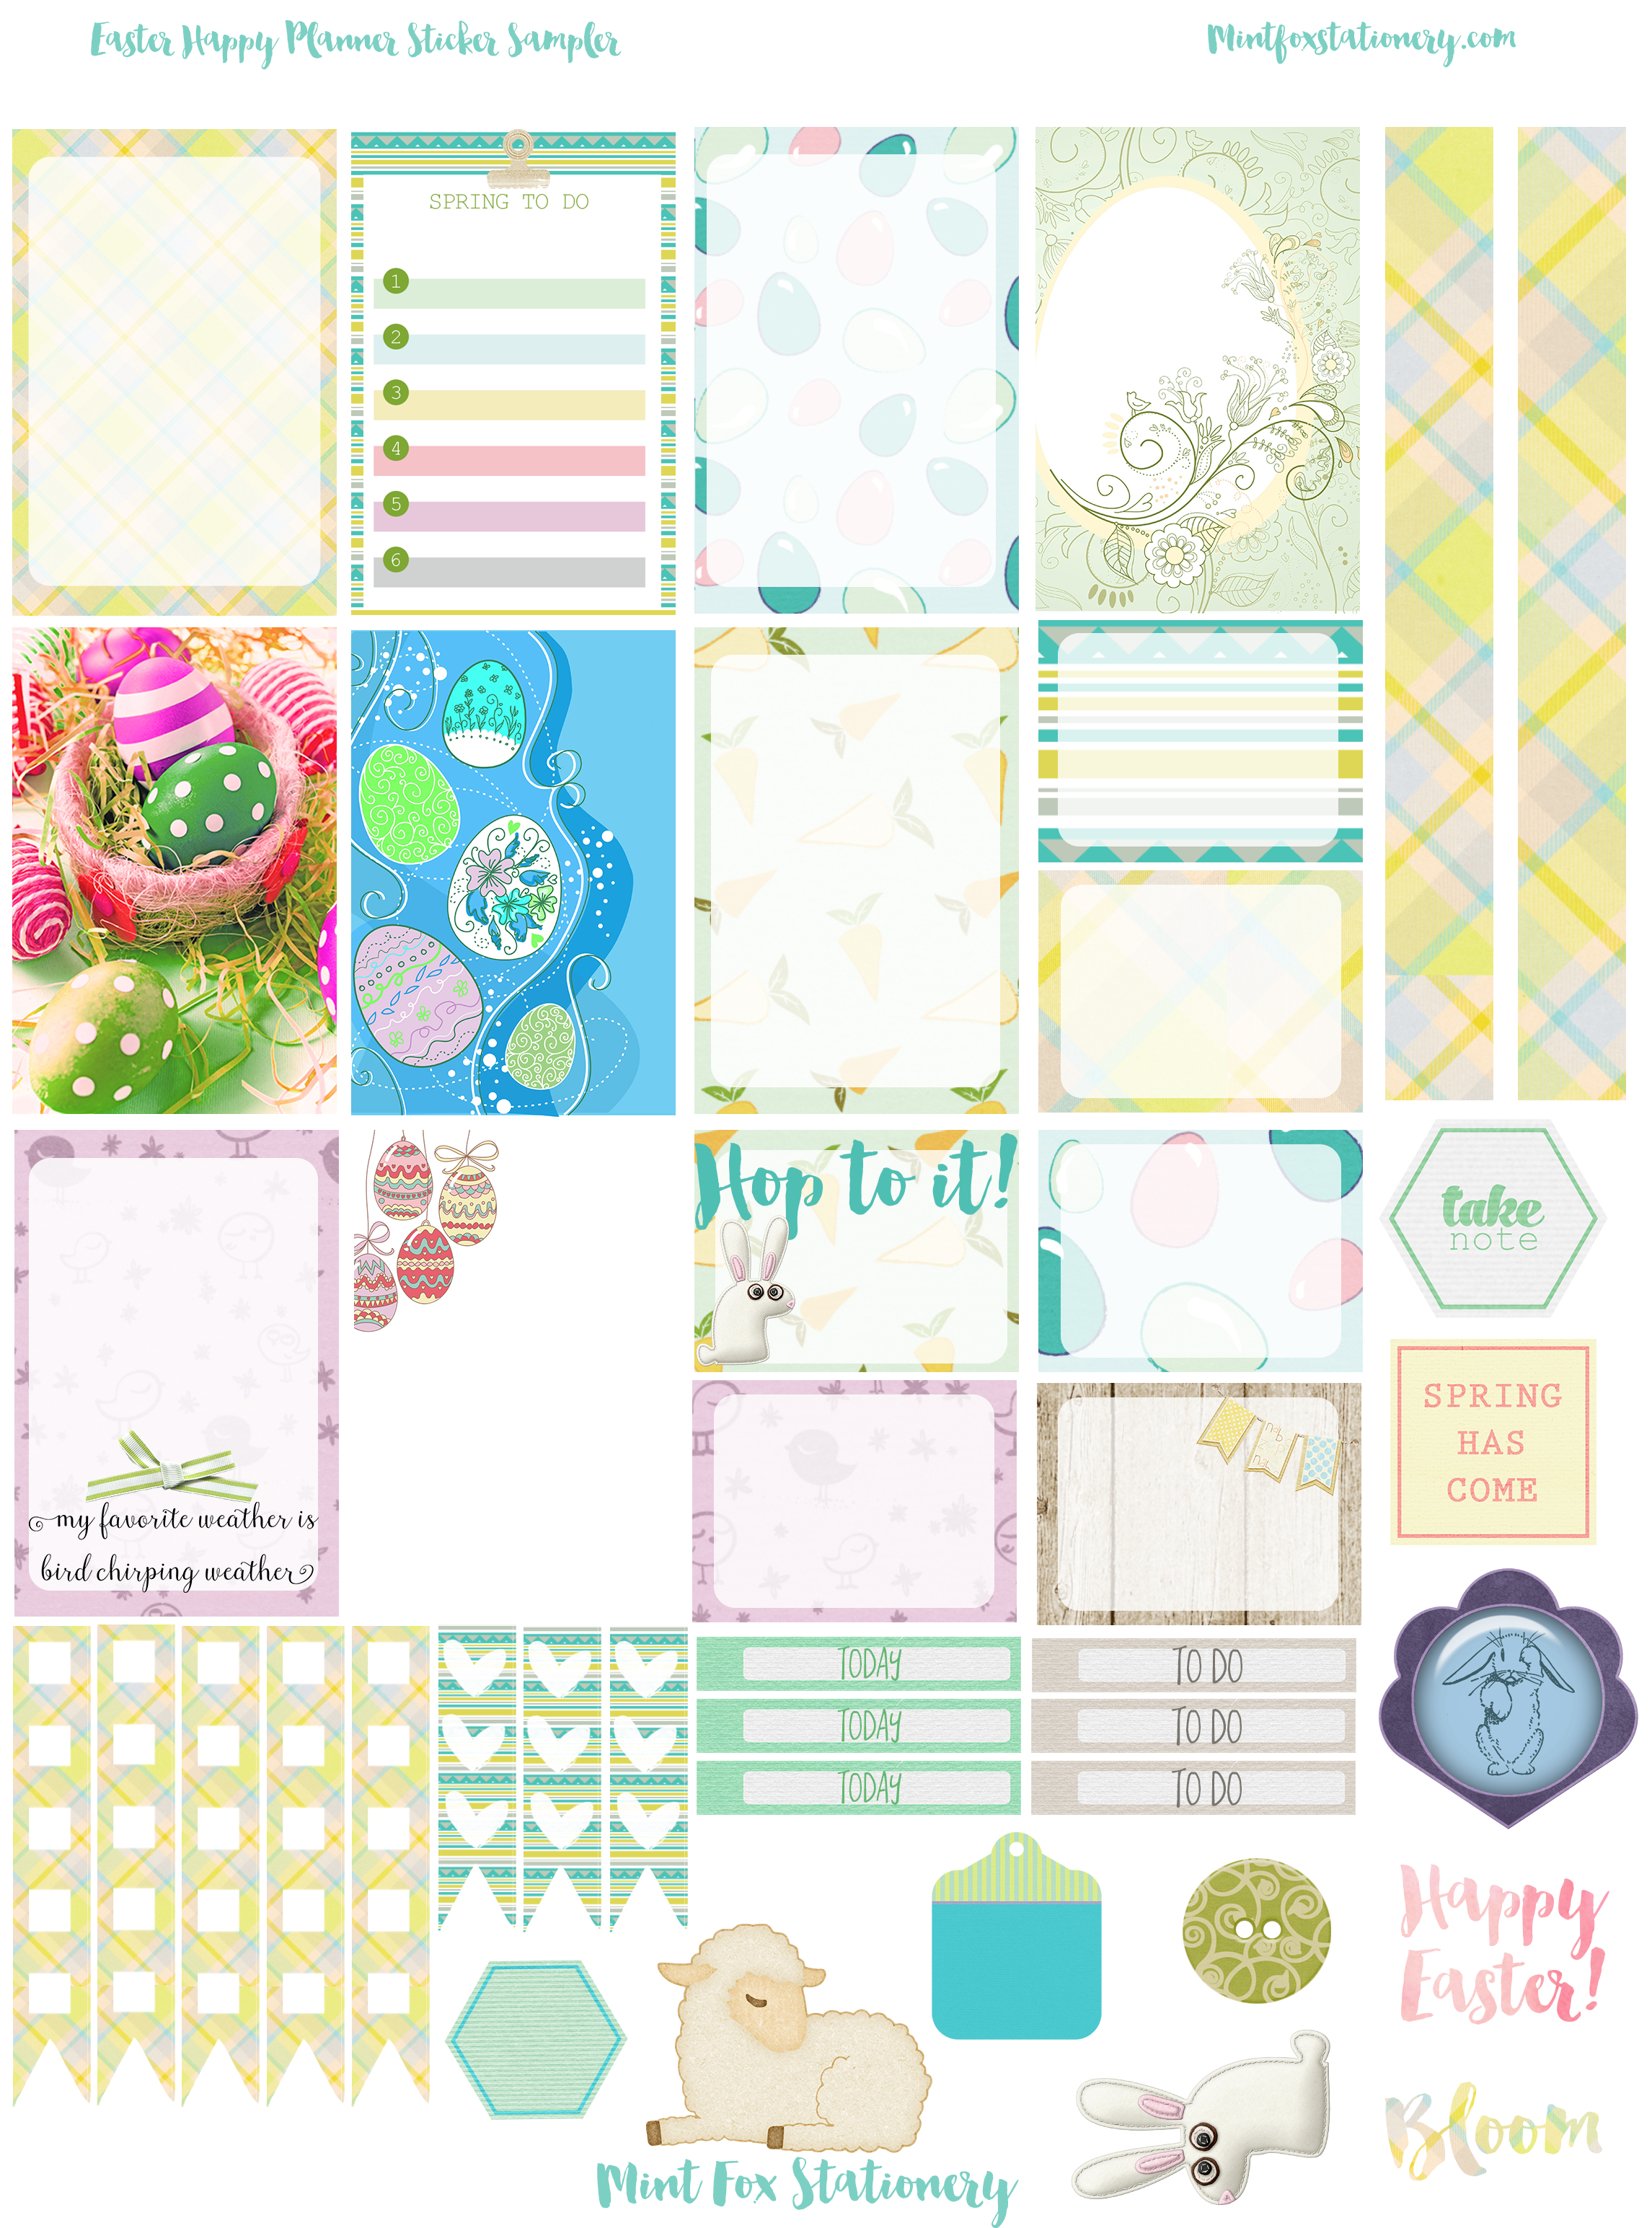 Easter Happy Planner Printable Sticker Sampler Free! - Happy Planner Free Printable Stickers